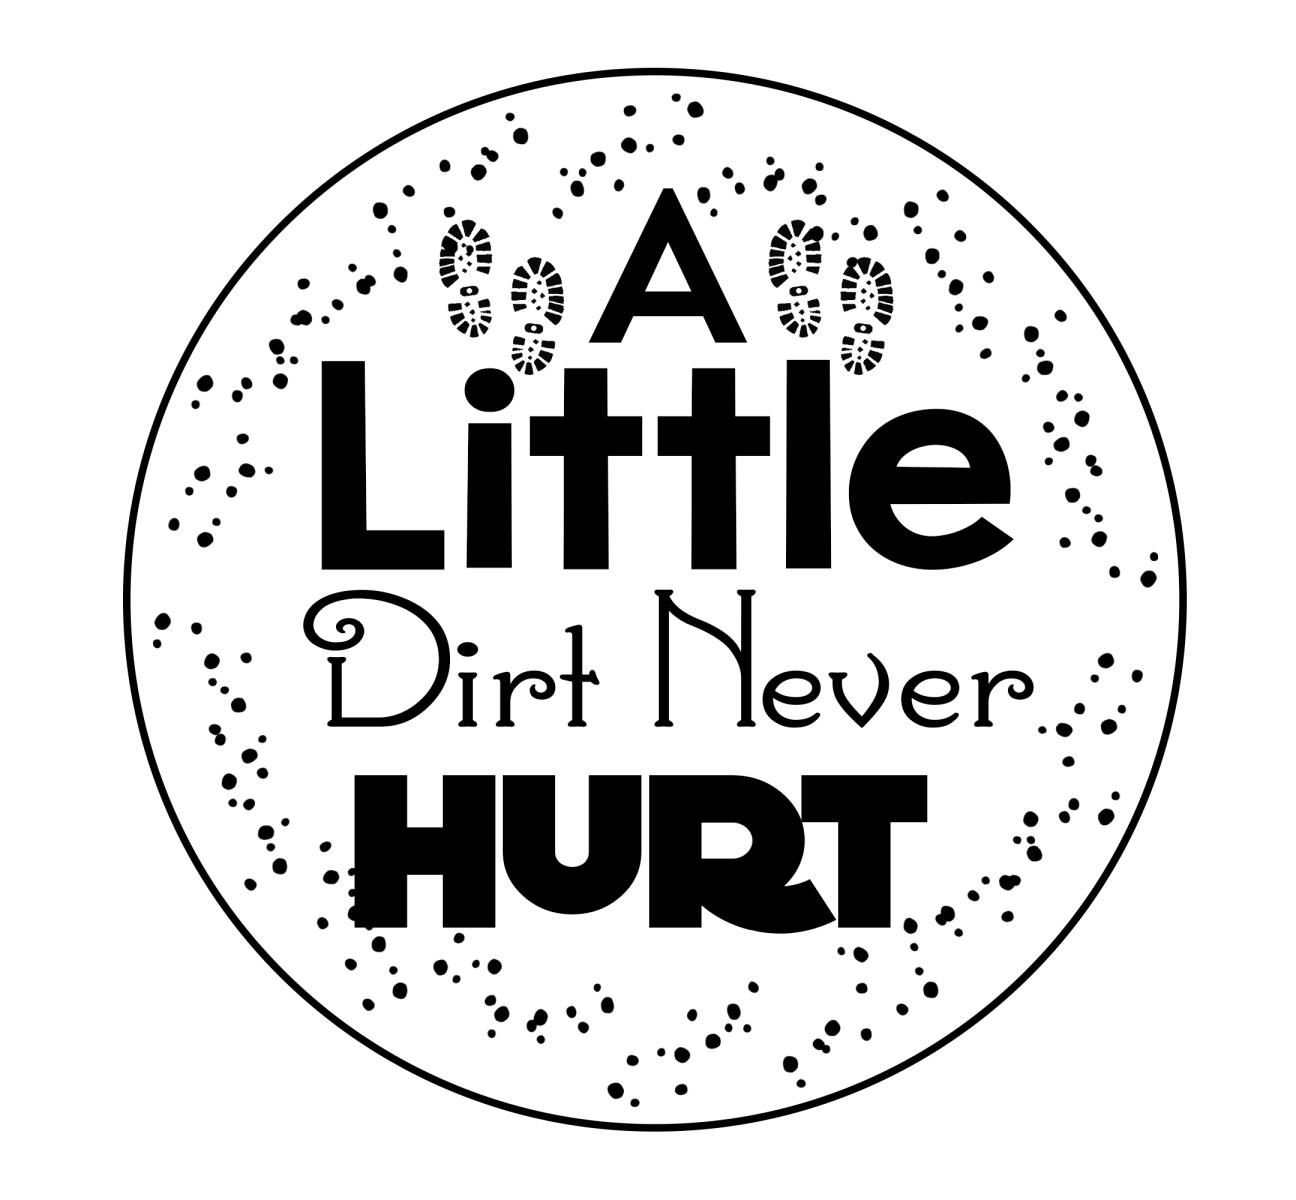 Camping Quotes - A Little Dirt Never Hurt - Camping Sign